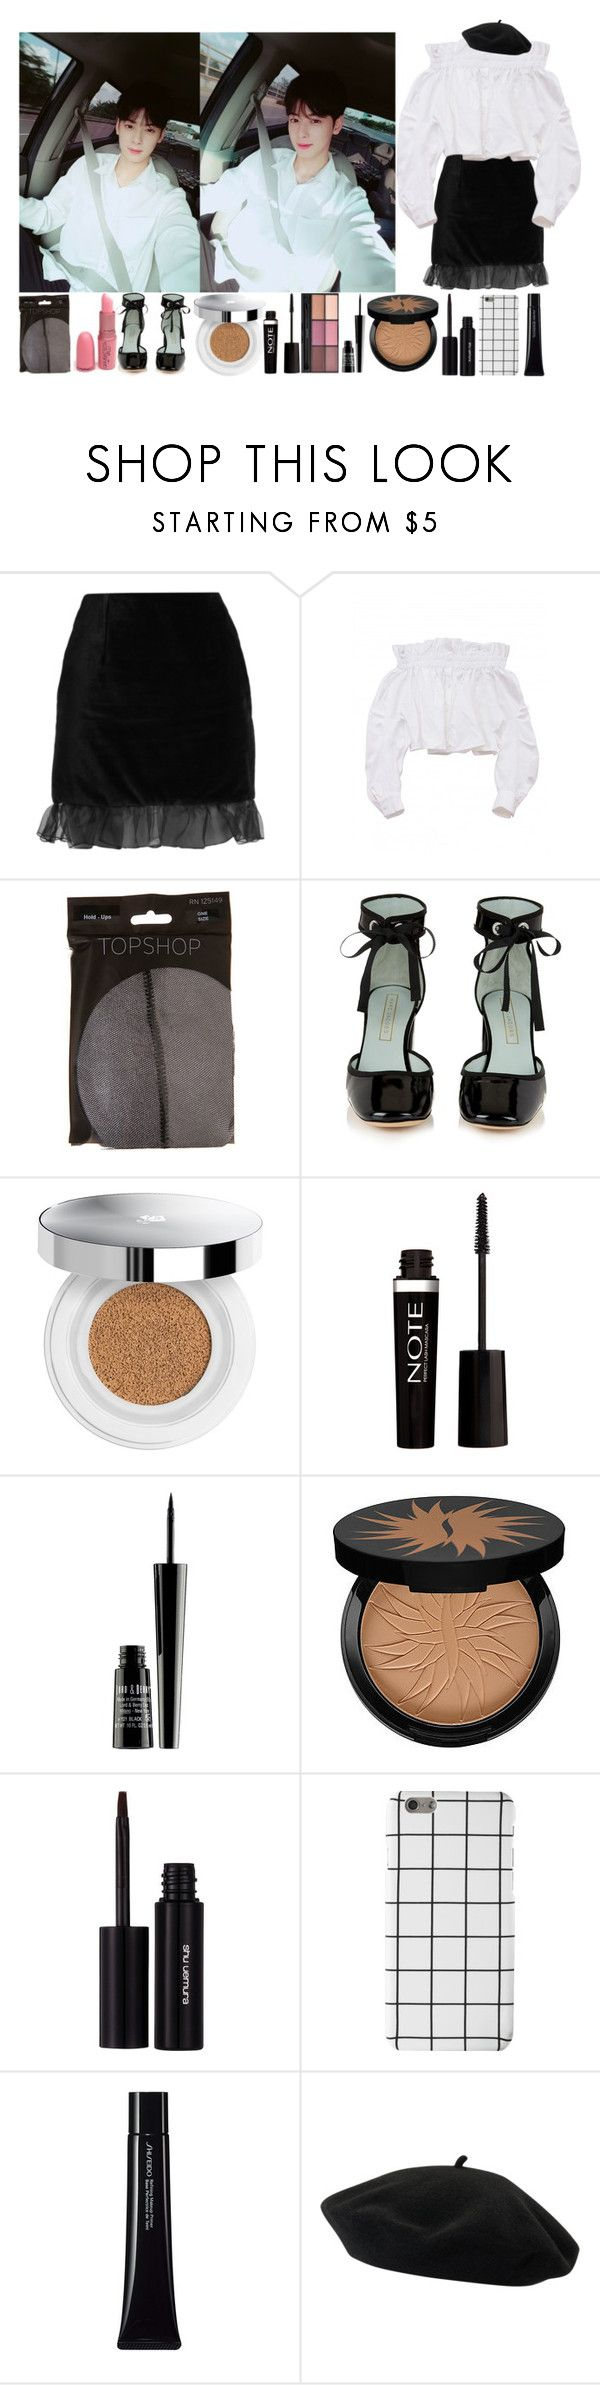 """""""Car selcas with Eunwoo"""" by yoonkimin ❤ liked on Polyvore featuring AlexaChung, Marc Jacobs, Lancôme, Lord & Berry, Sephora Collection, shu uemura, Shiseido and Goorin"""